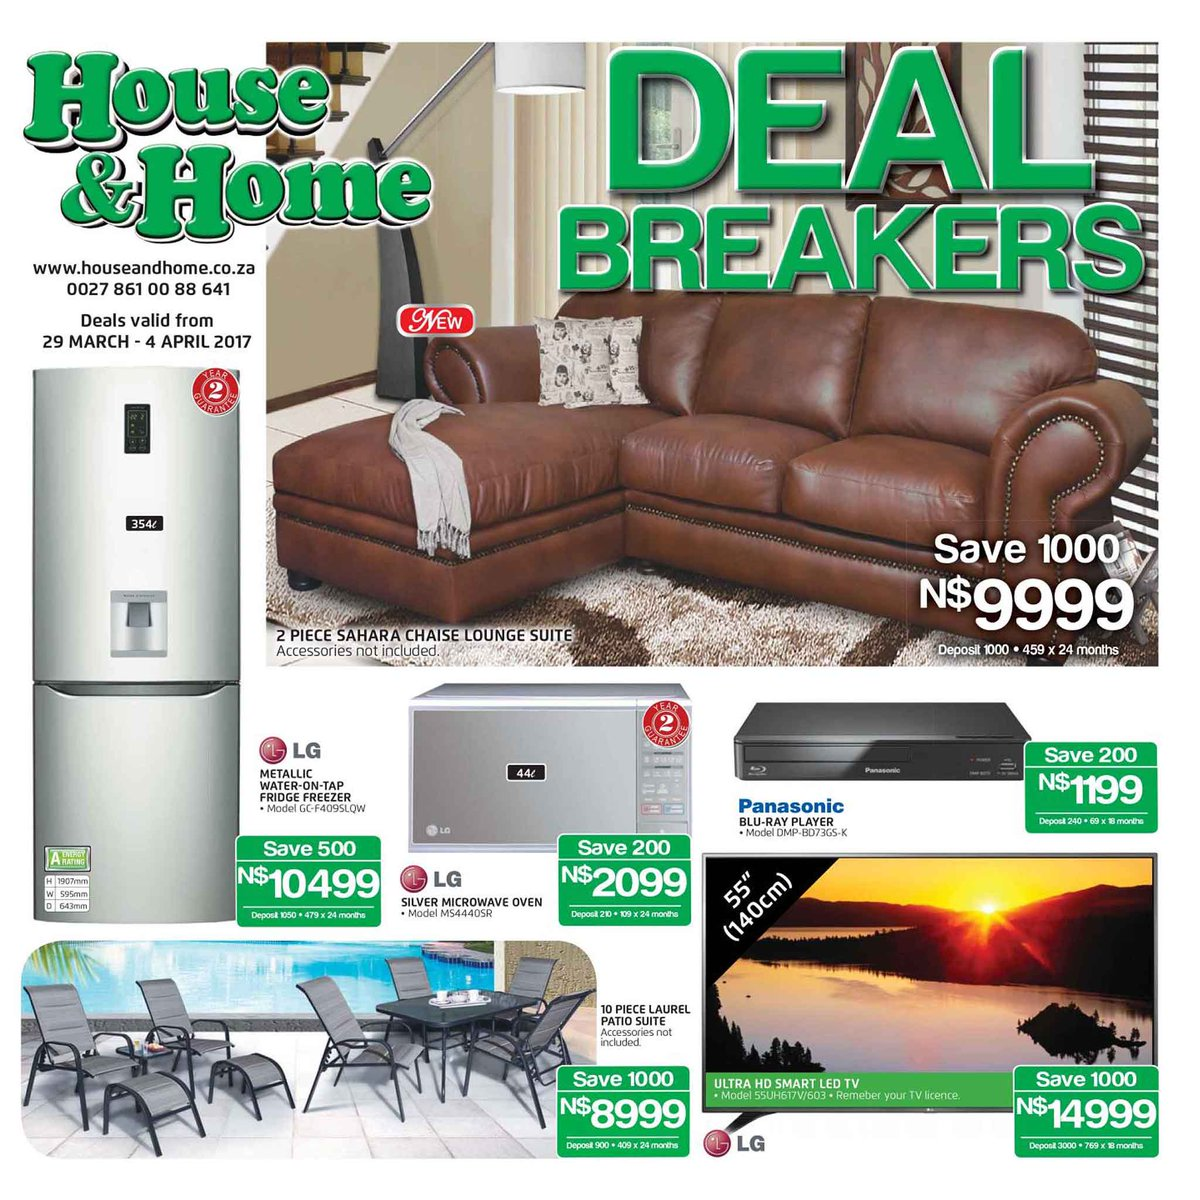 House and home furniture windhoek - Specials Namibia On Twitter House Home Namibia Specials 29